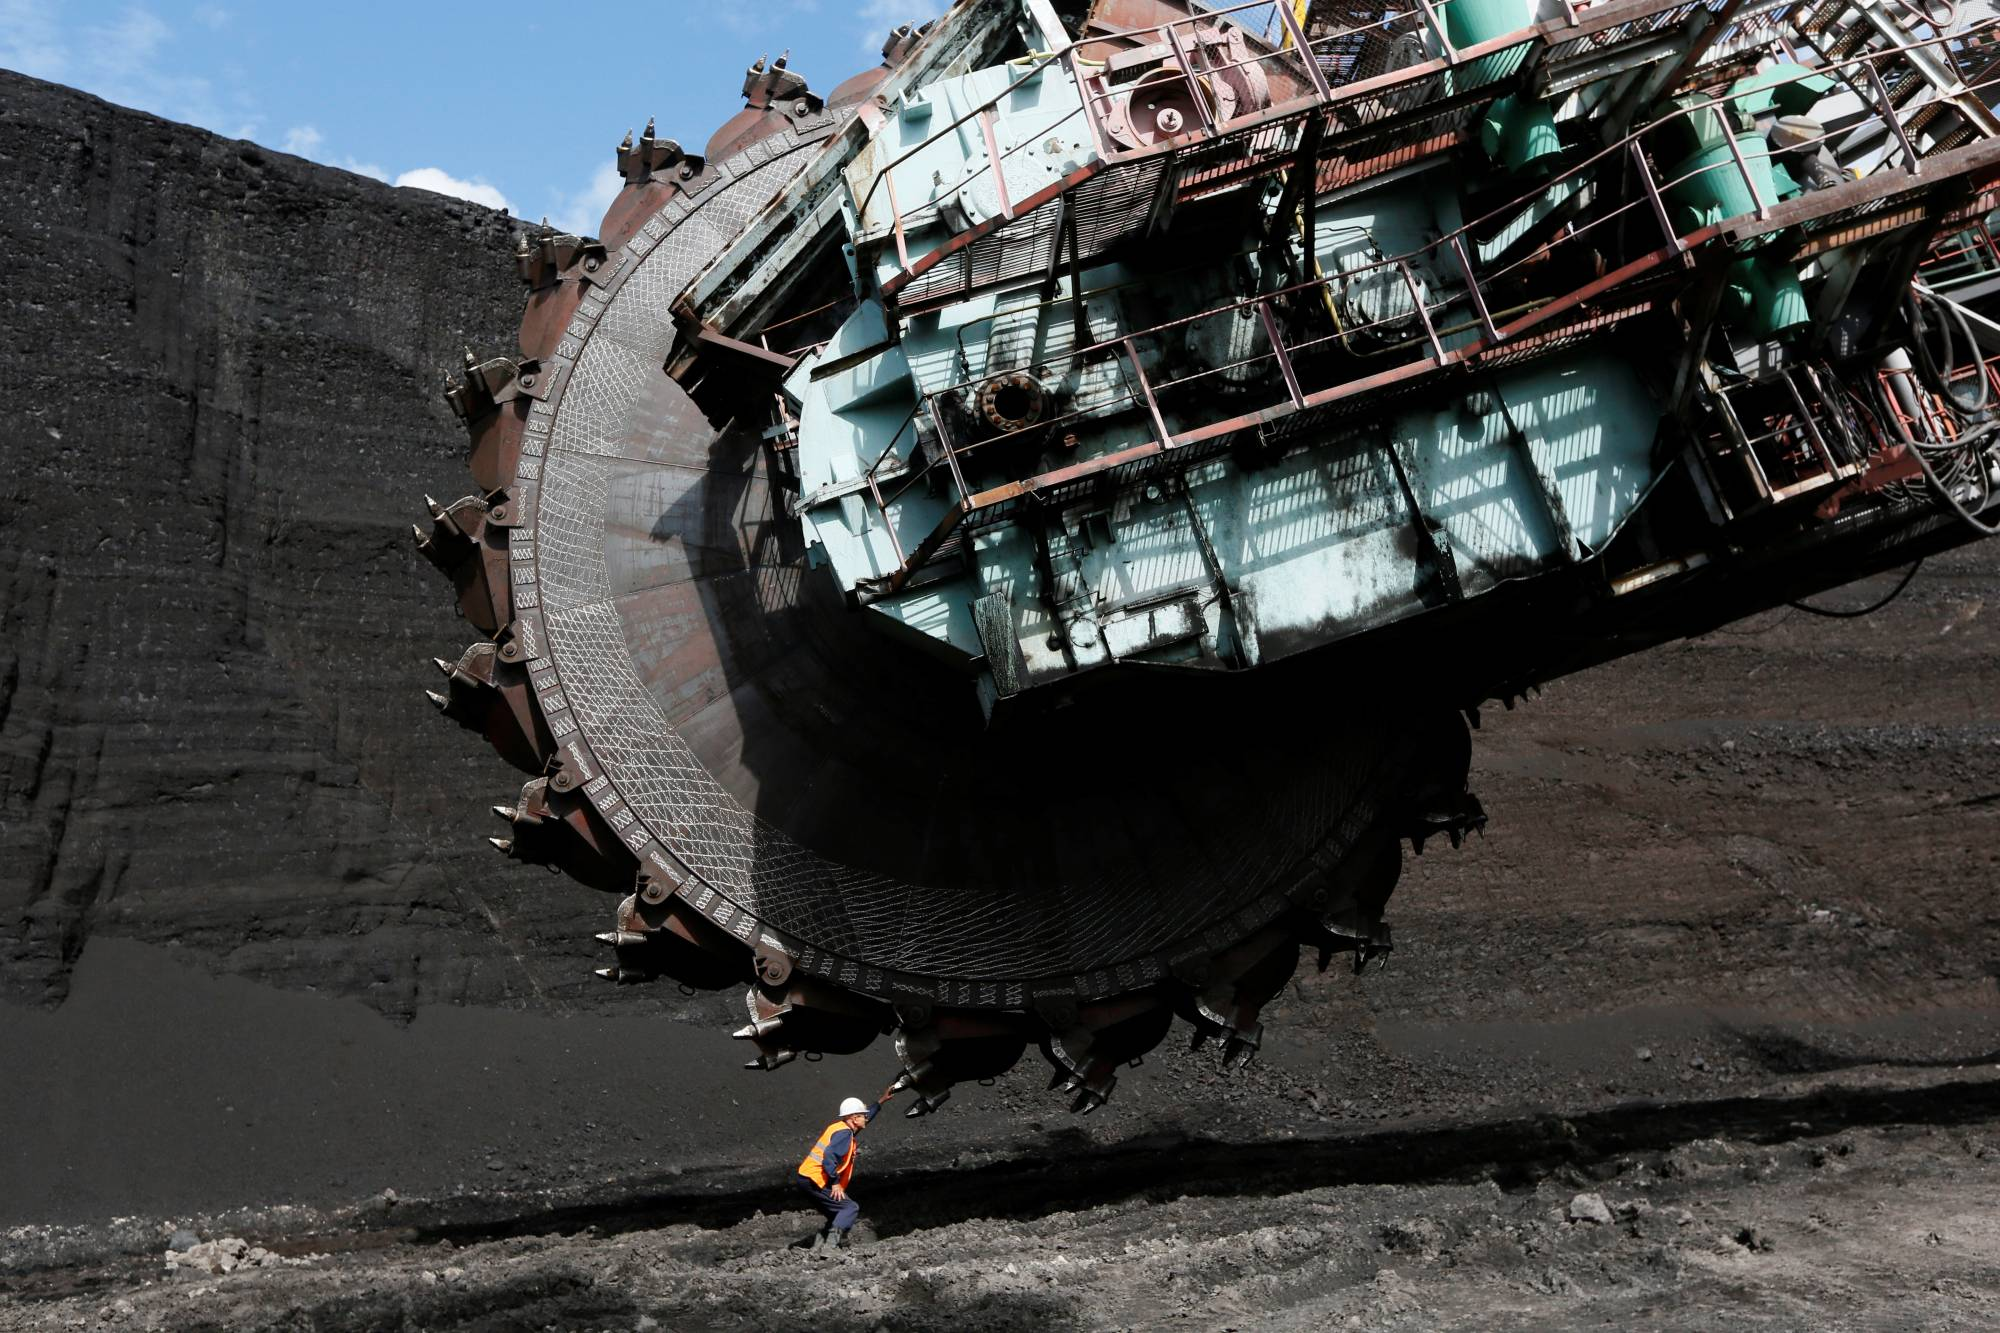 A worker examines a Soviet-made rotary dredge at the Beryozovsky opencast colliery near the Siberian town of Sharypovo, Russia. Elsewhere in Siberia, a vision of Elga as a new coal behemoth epitomizes Moscow's contrarian view of the global energy transition underway.  | REUTERS